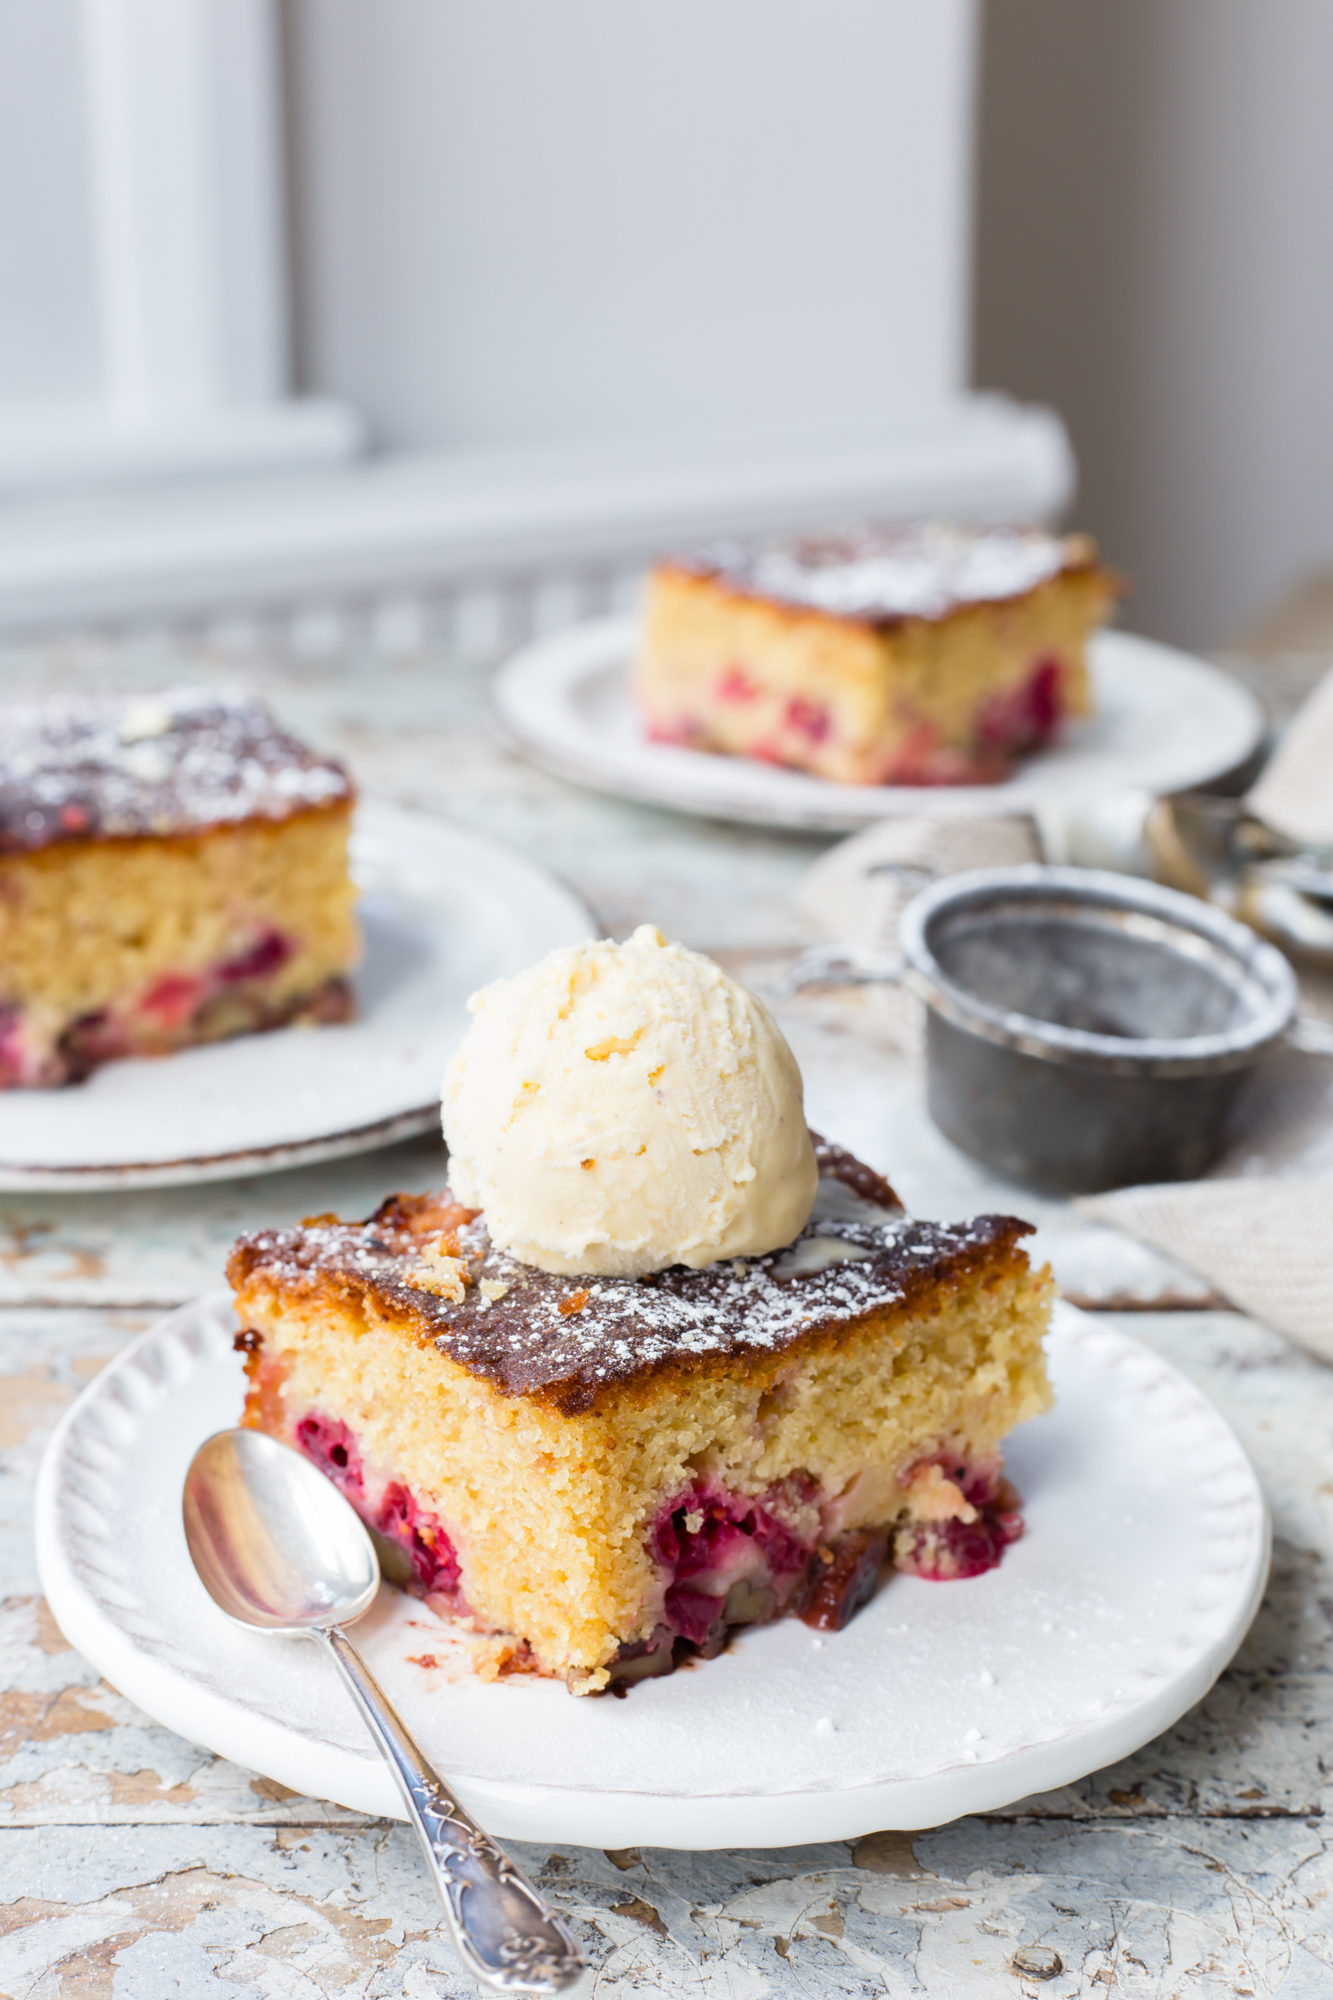 Thermomix Cranberry Pecan Cake